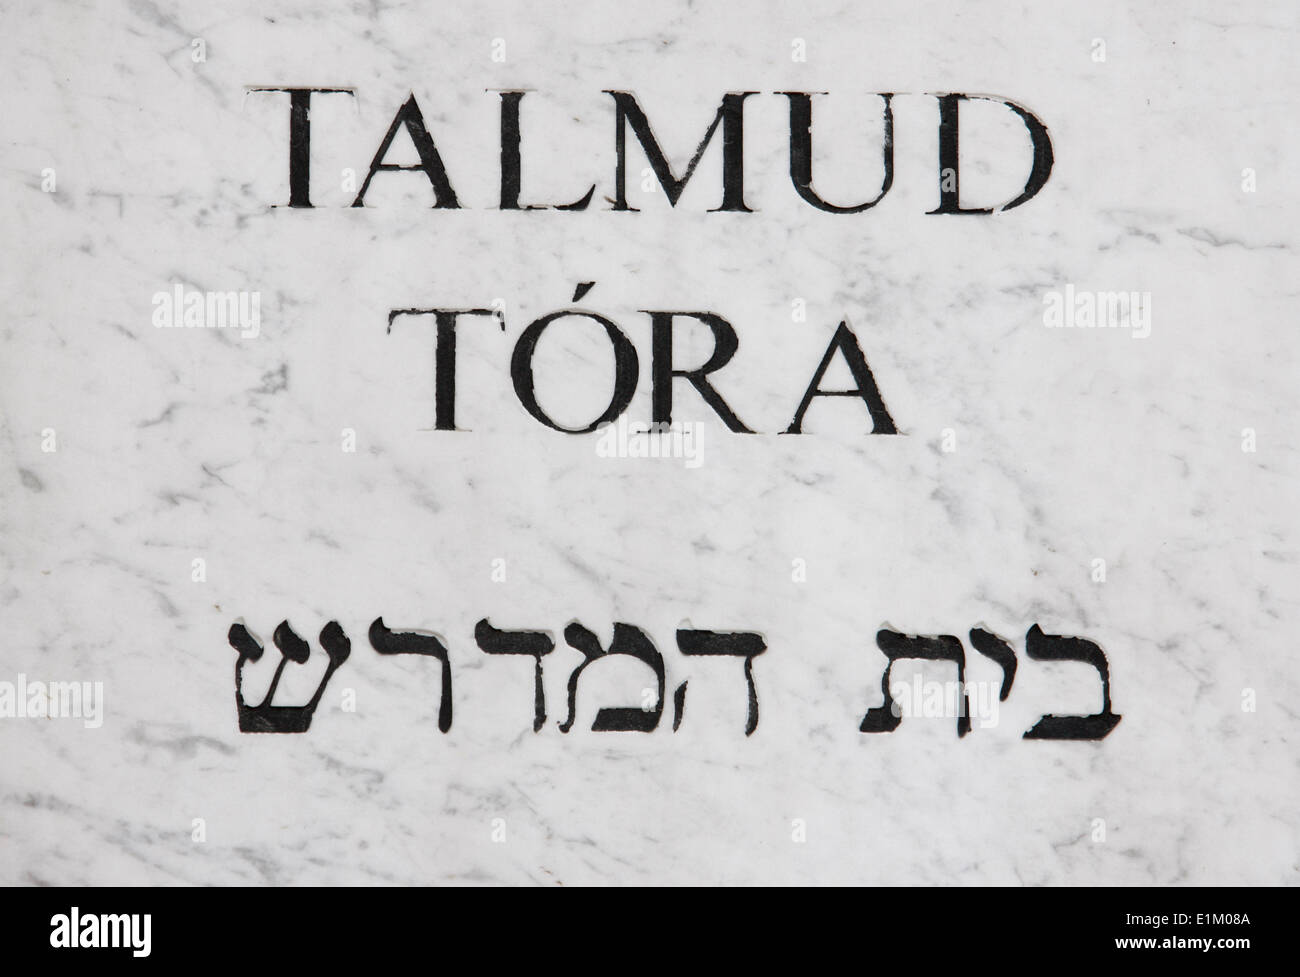 Talmud Tora sign - Stock Image